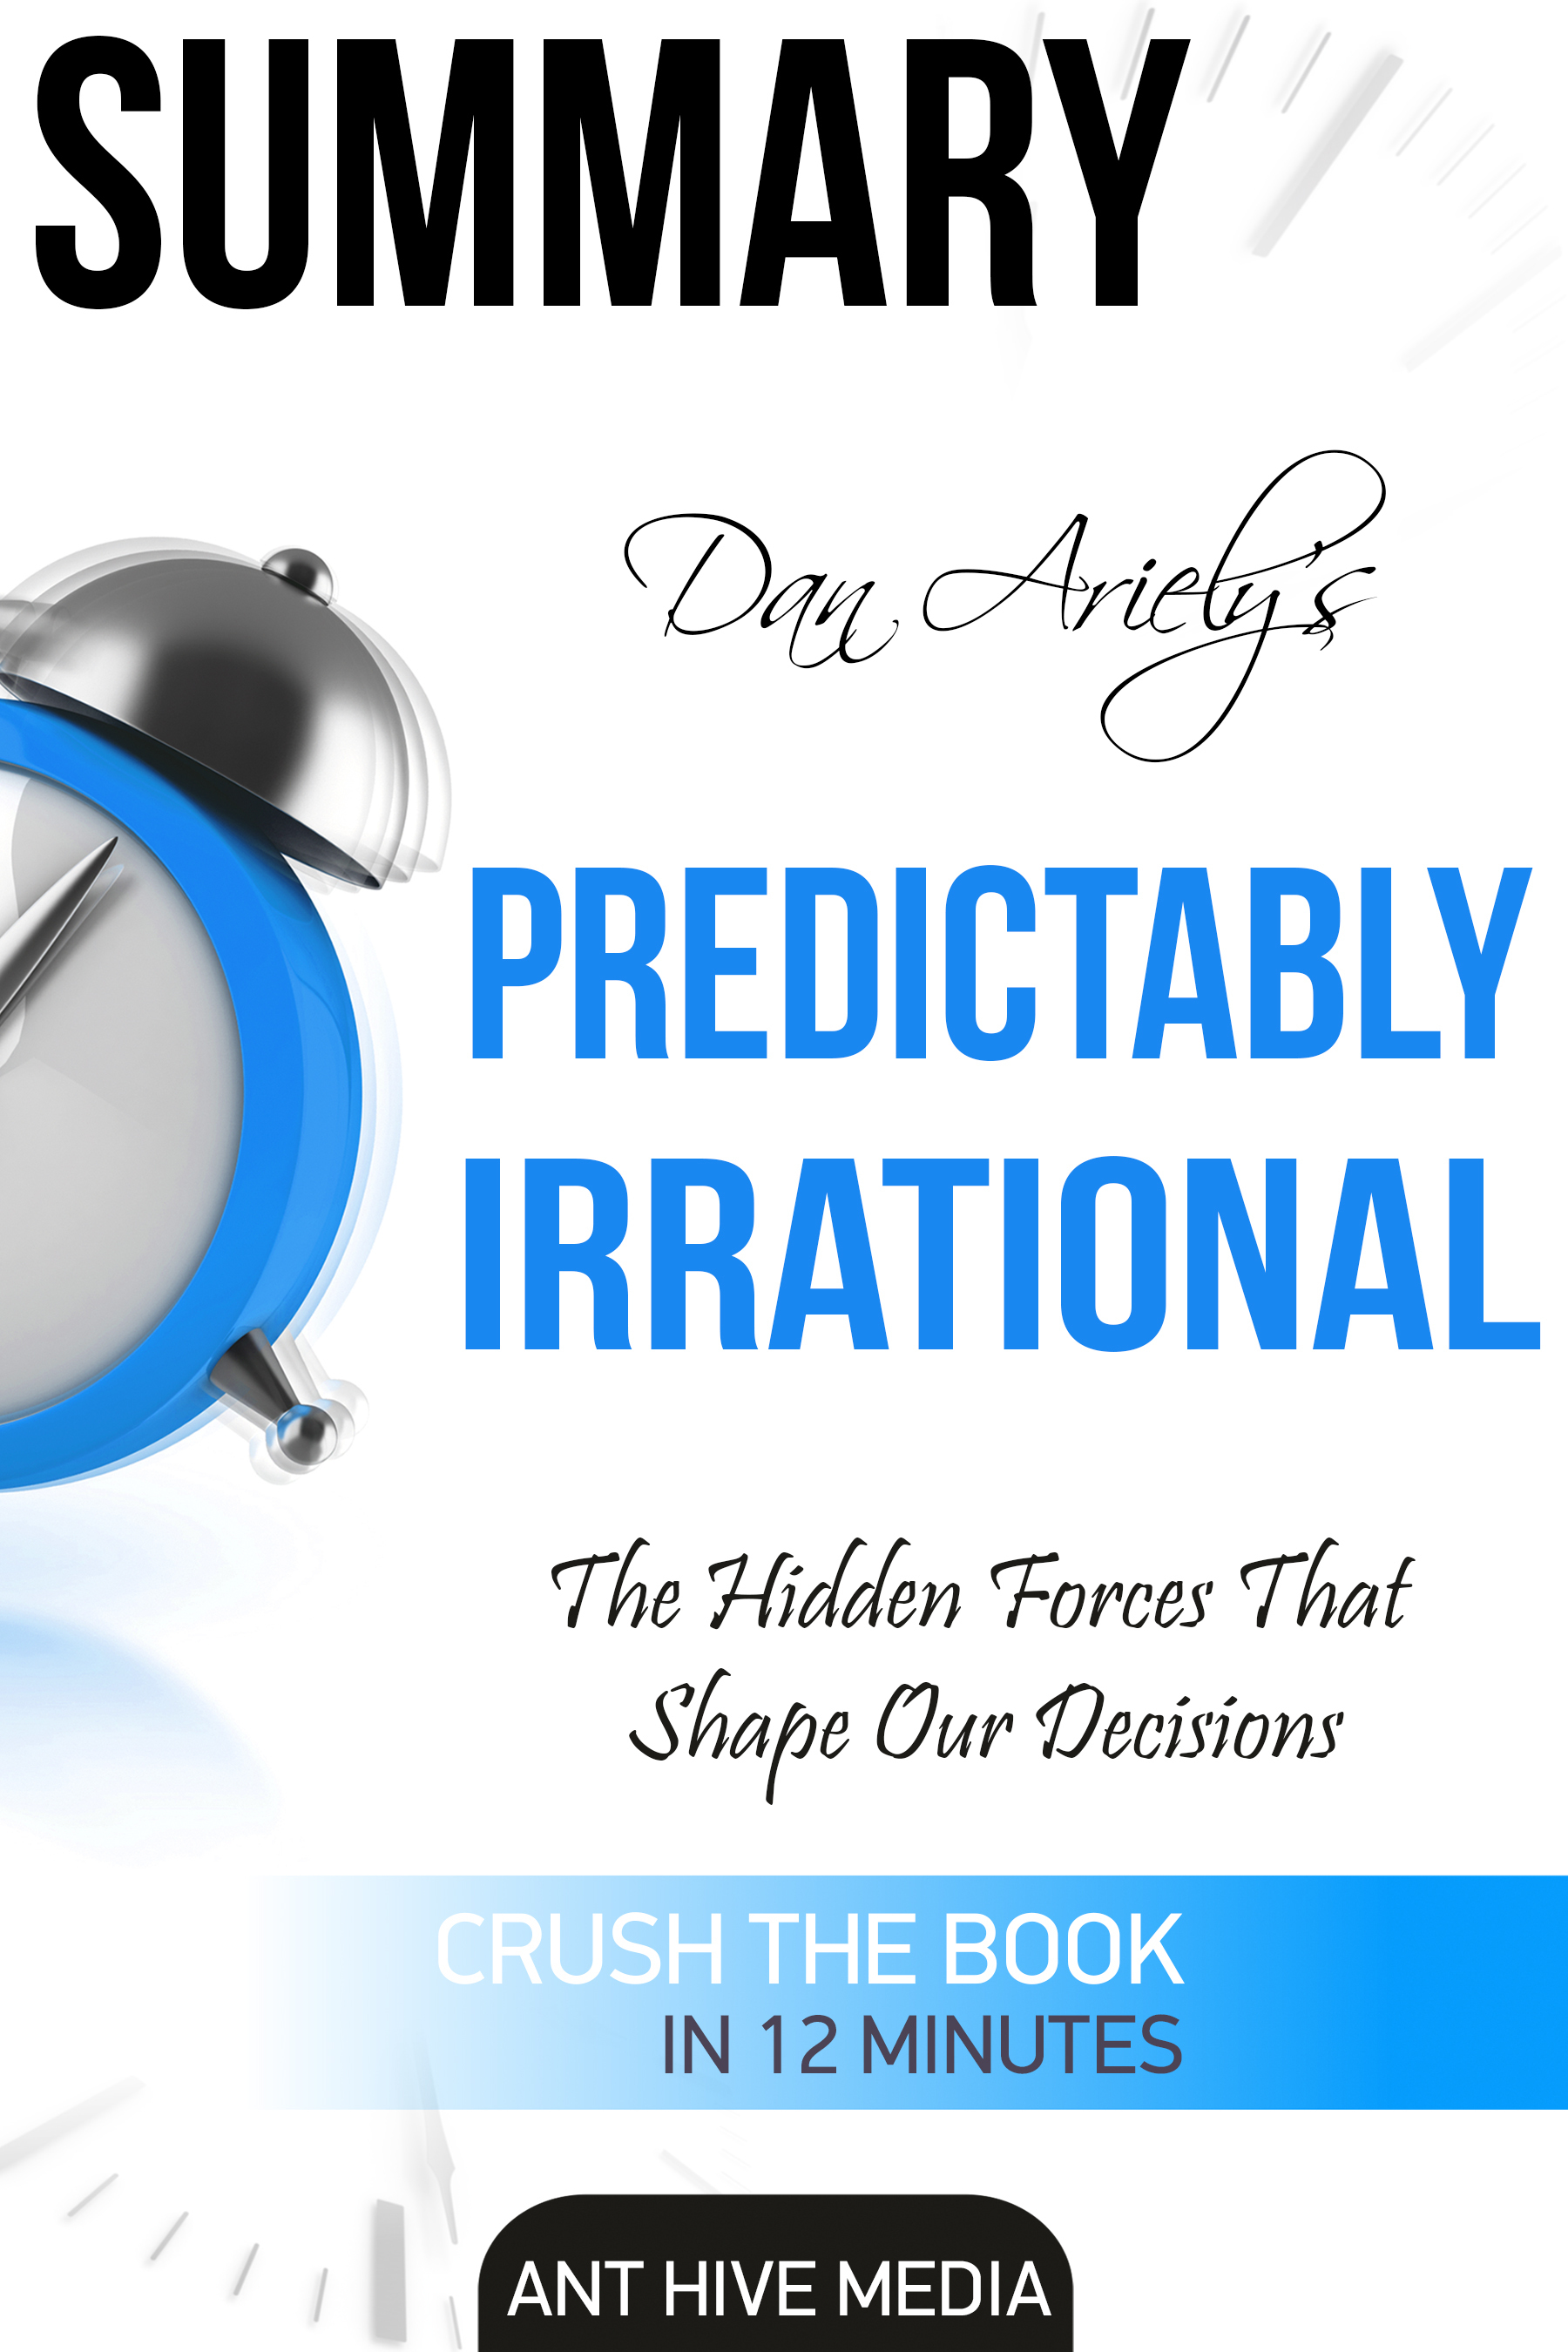 Dan Ariely-Predictably Irrational  The Hidden Forces That Shape Our Decisions-HarperCollins (2008)